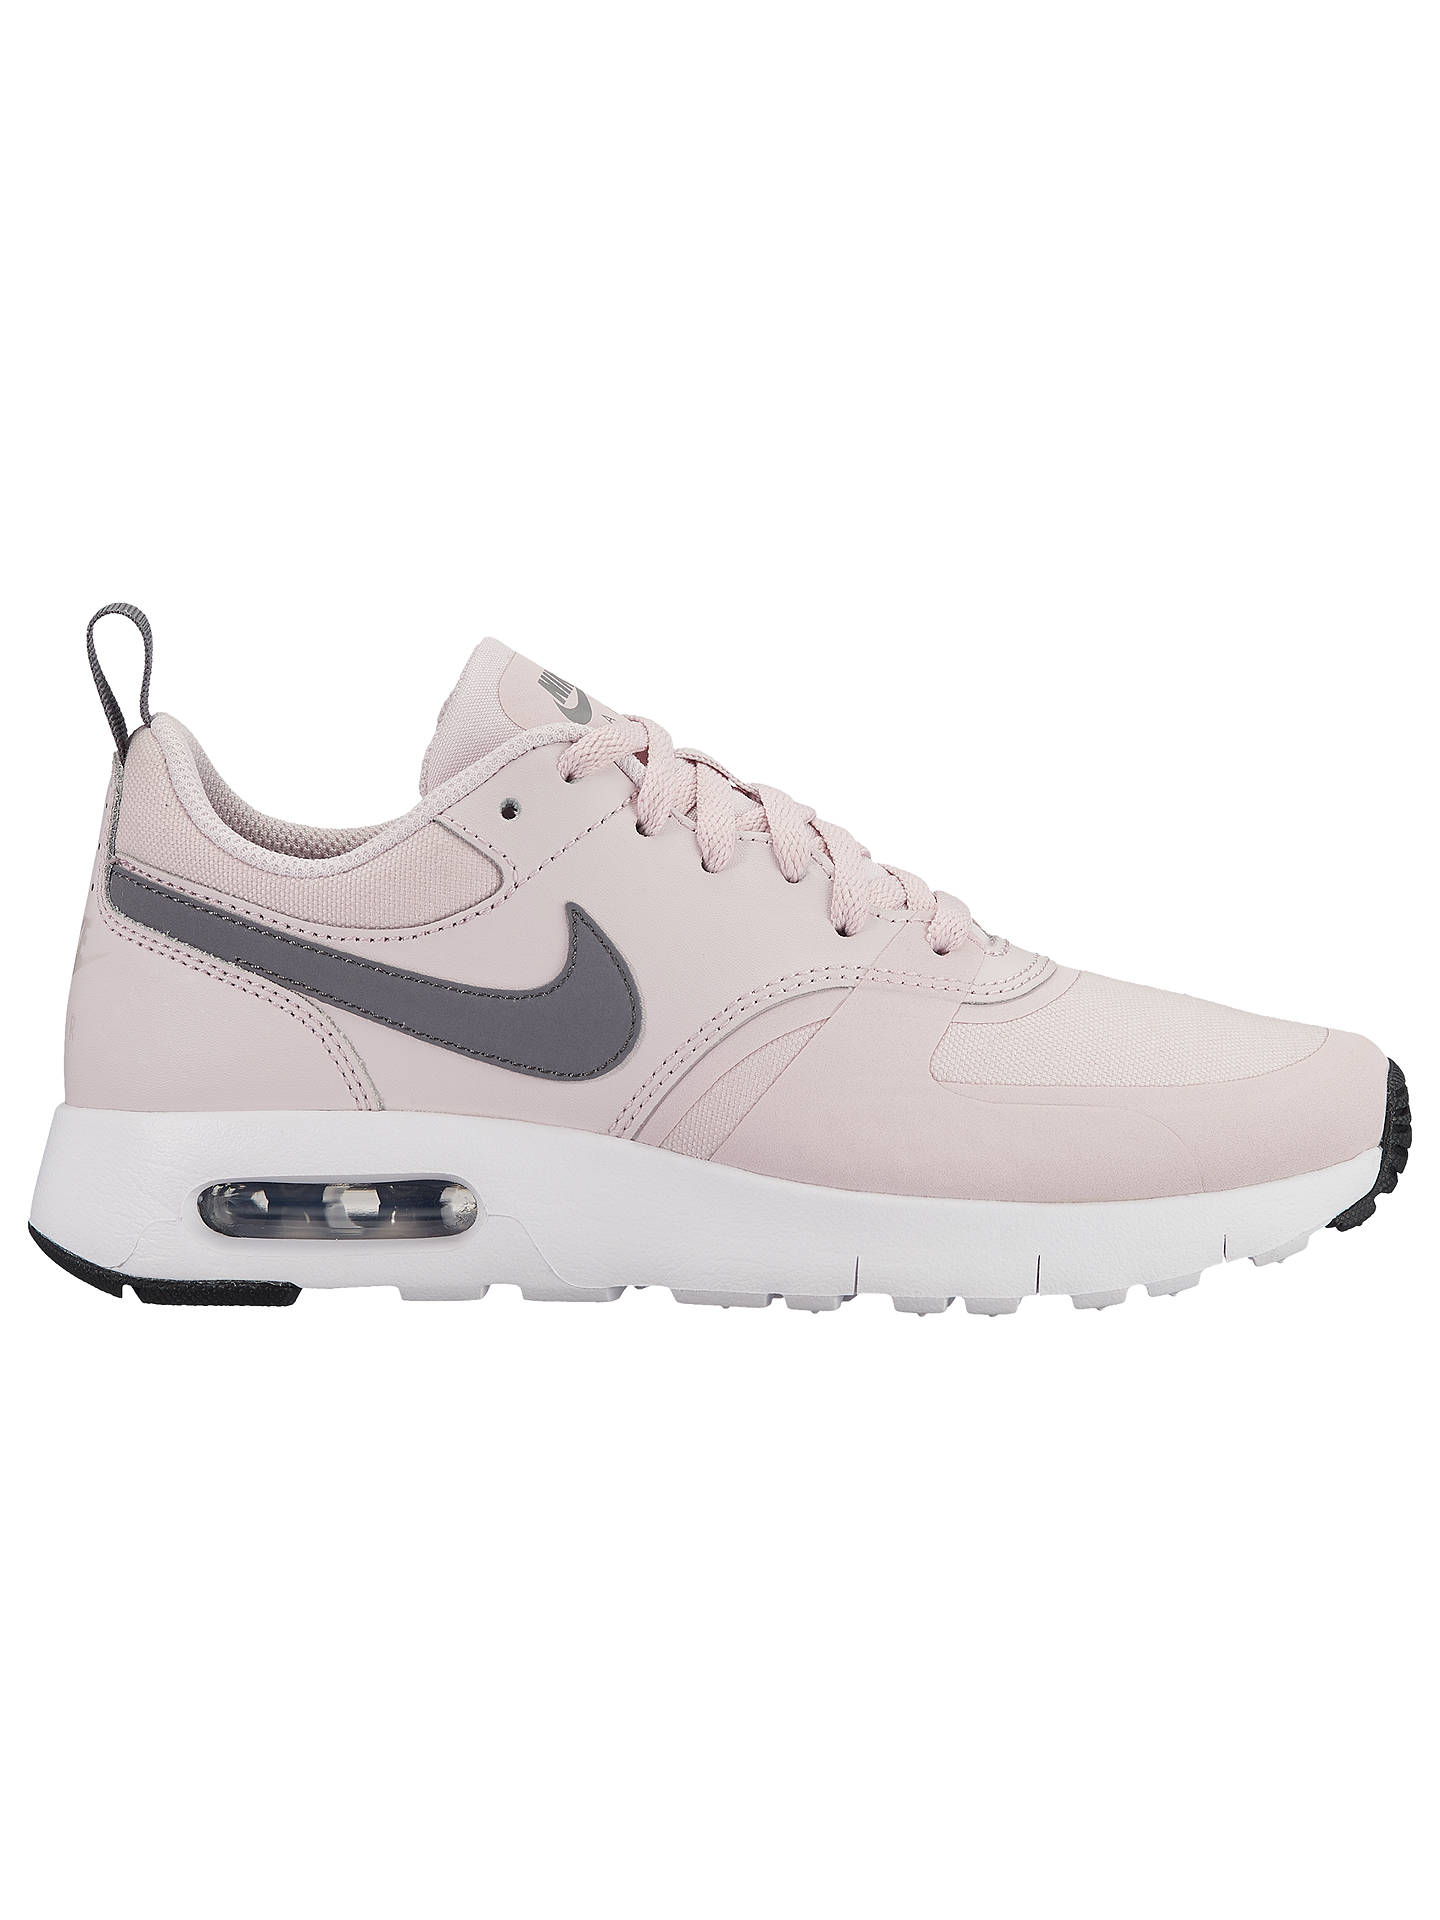 1d2e20b1dc Buy Nike Children's Air Max Vision Trainers, Light Pink, 3 Online at  johnlewis.